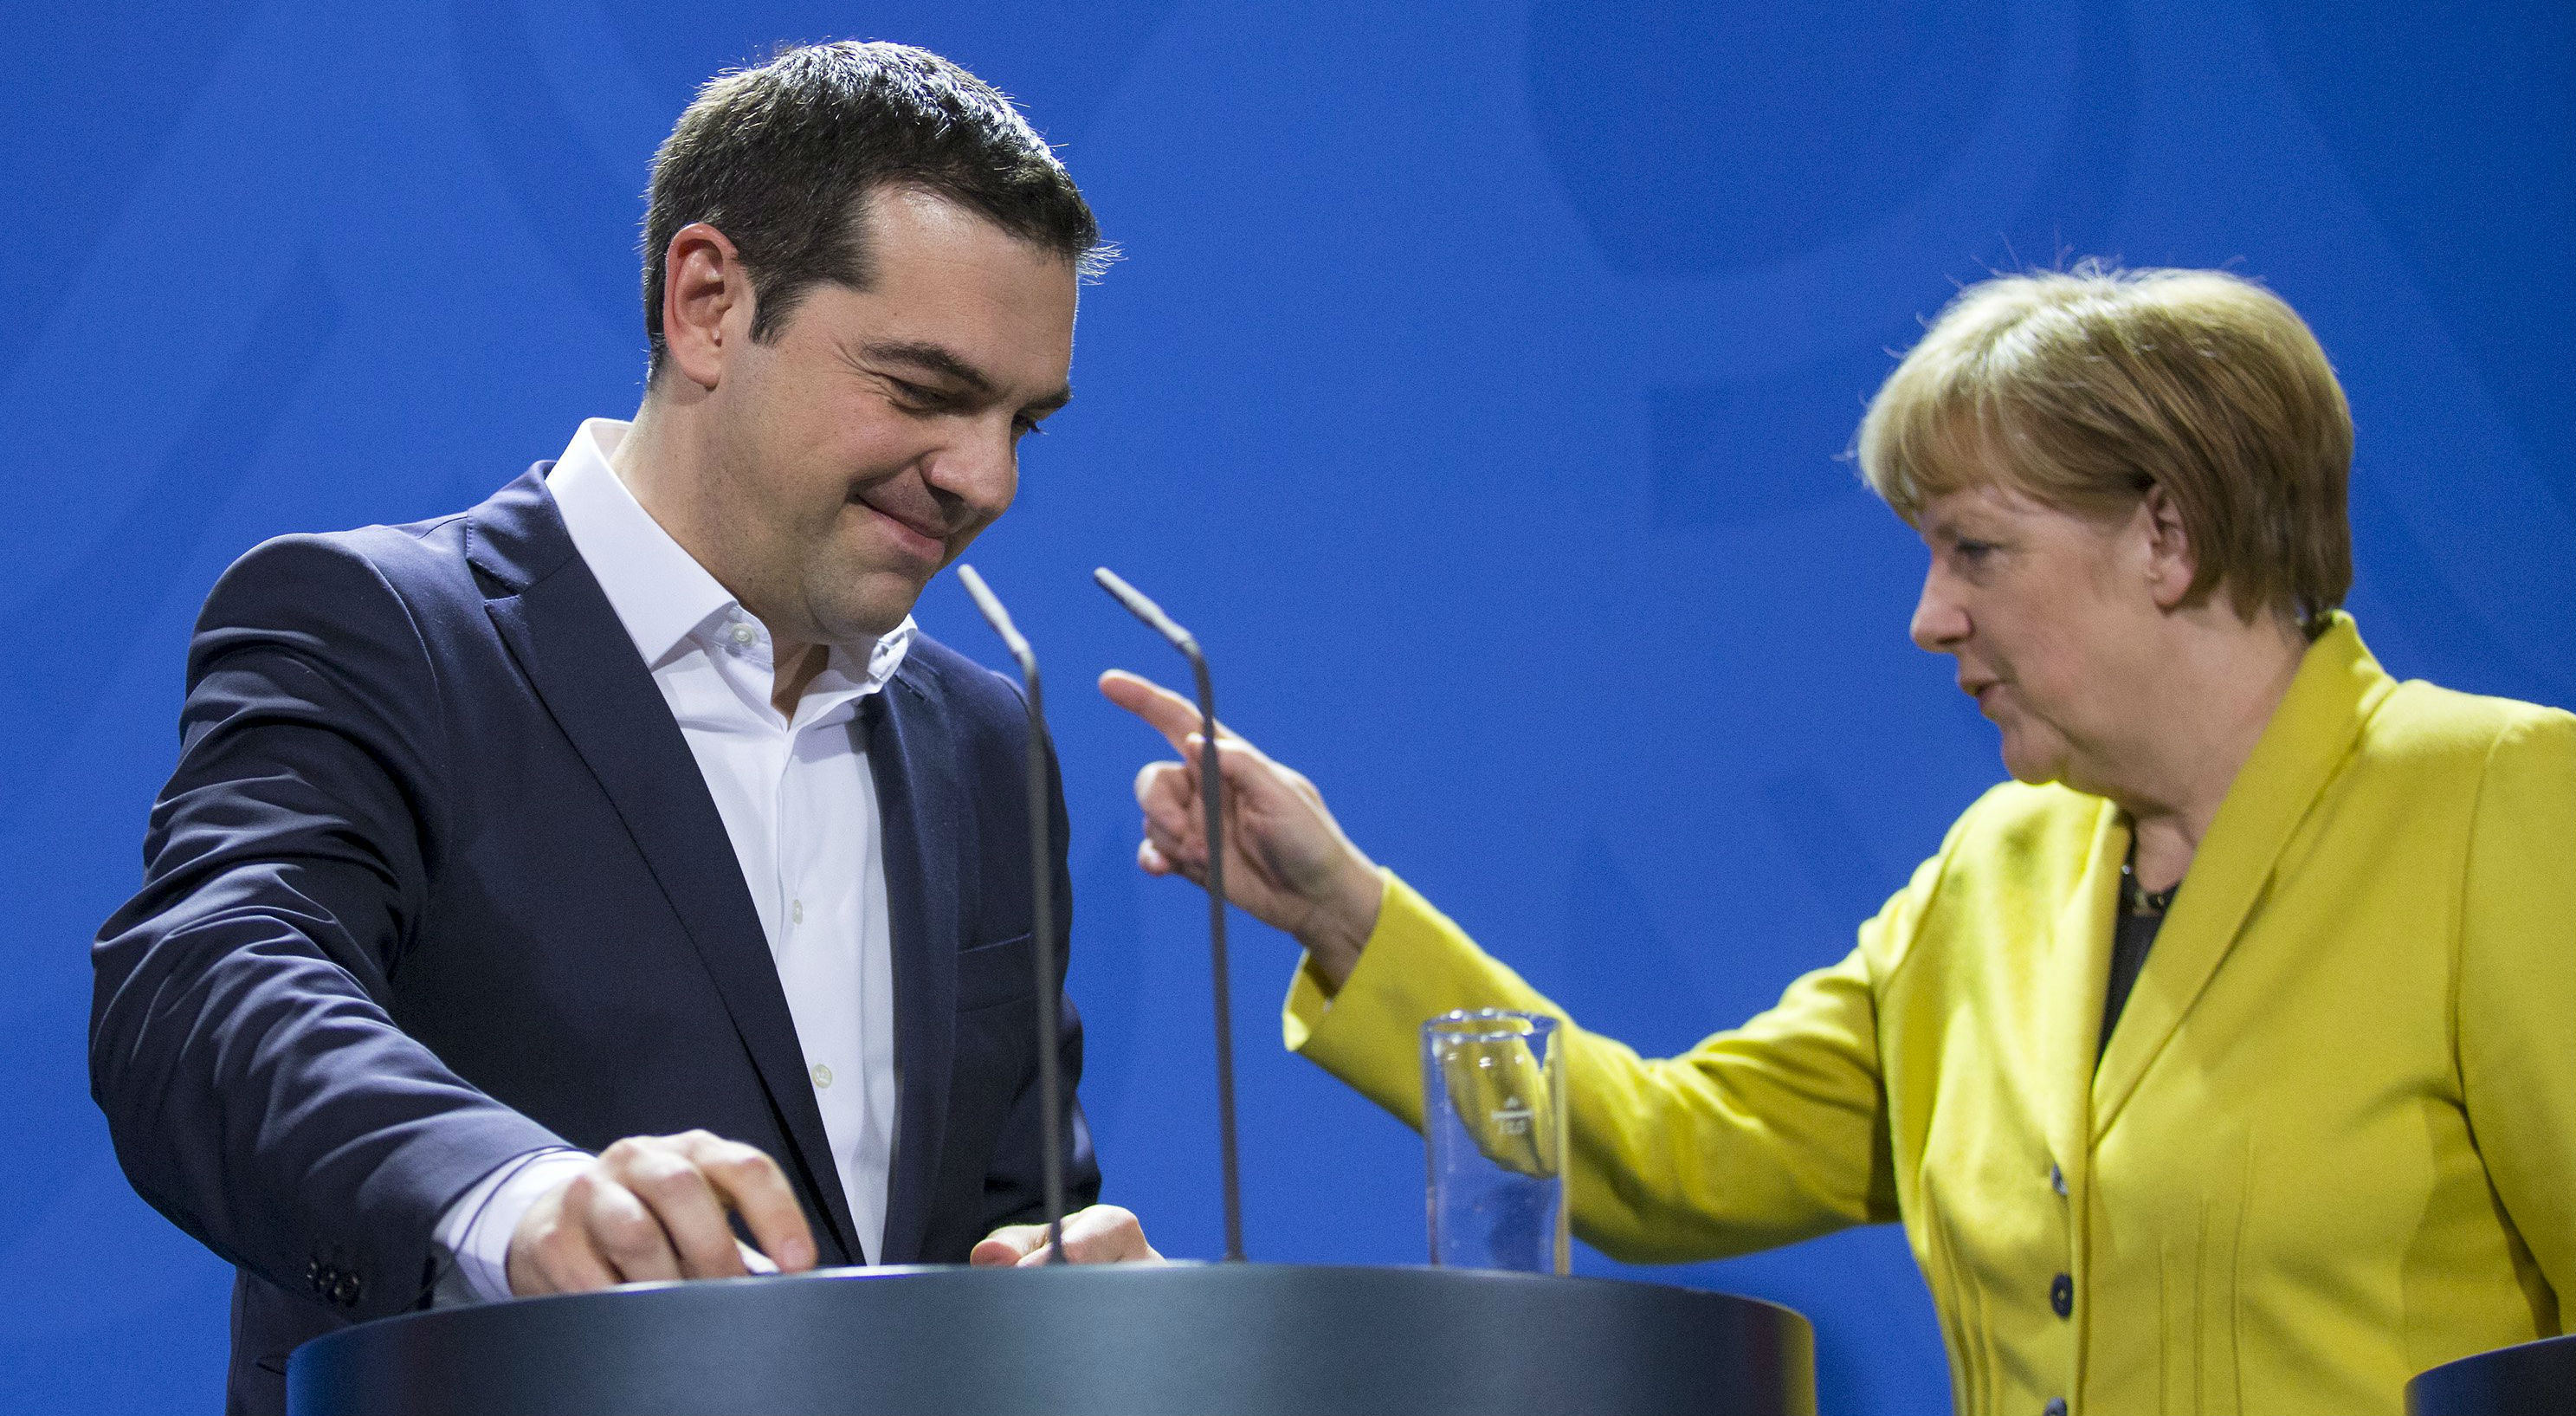 Greek Prime Minister Alexis Tsipras and German Chancellor Angela Merkel now have the opportunity to rise to the occasion as European statesmen, not as politicians. Photo: Reuters